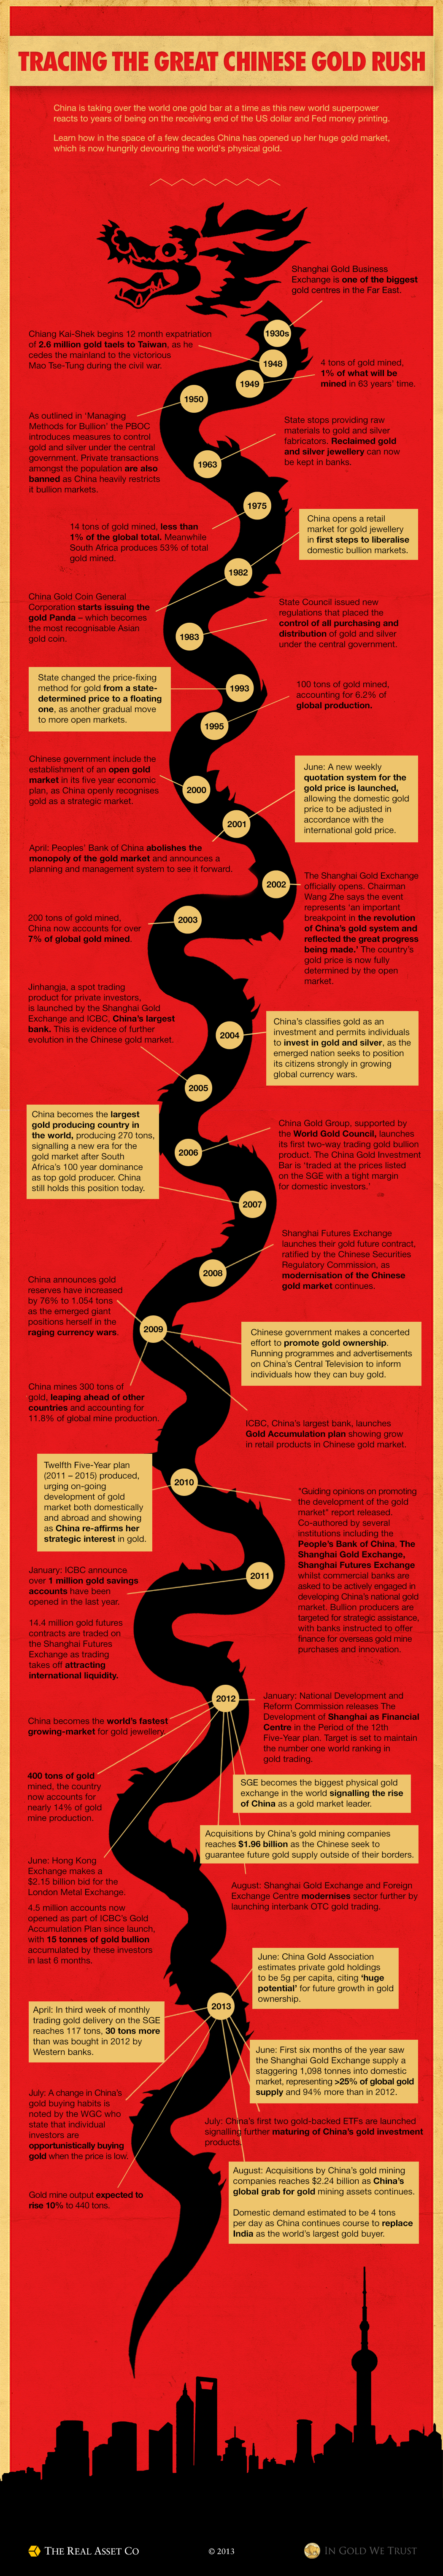 china-gold-history-infographic